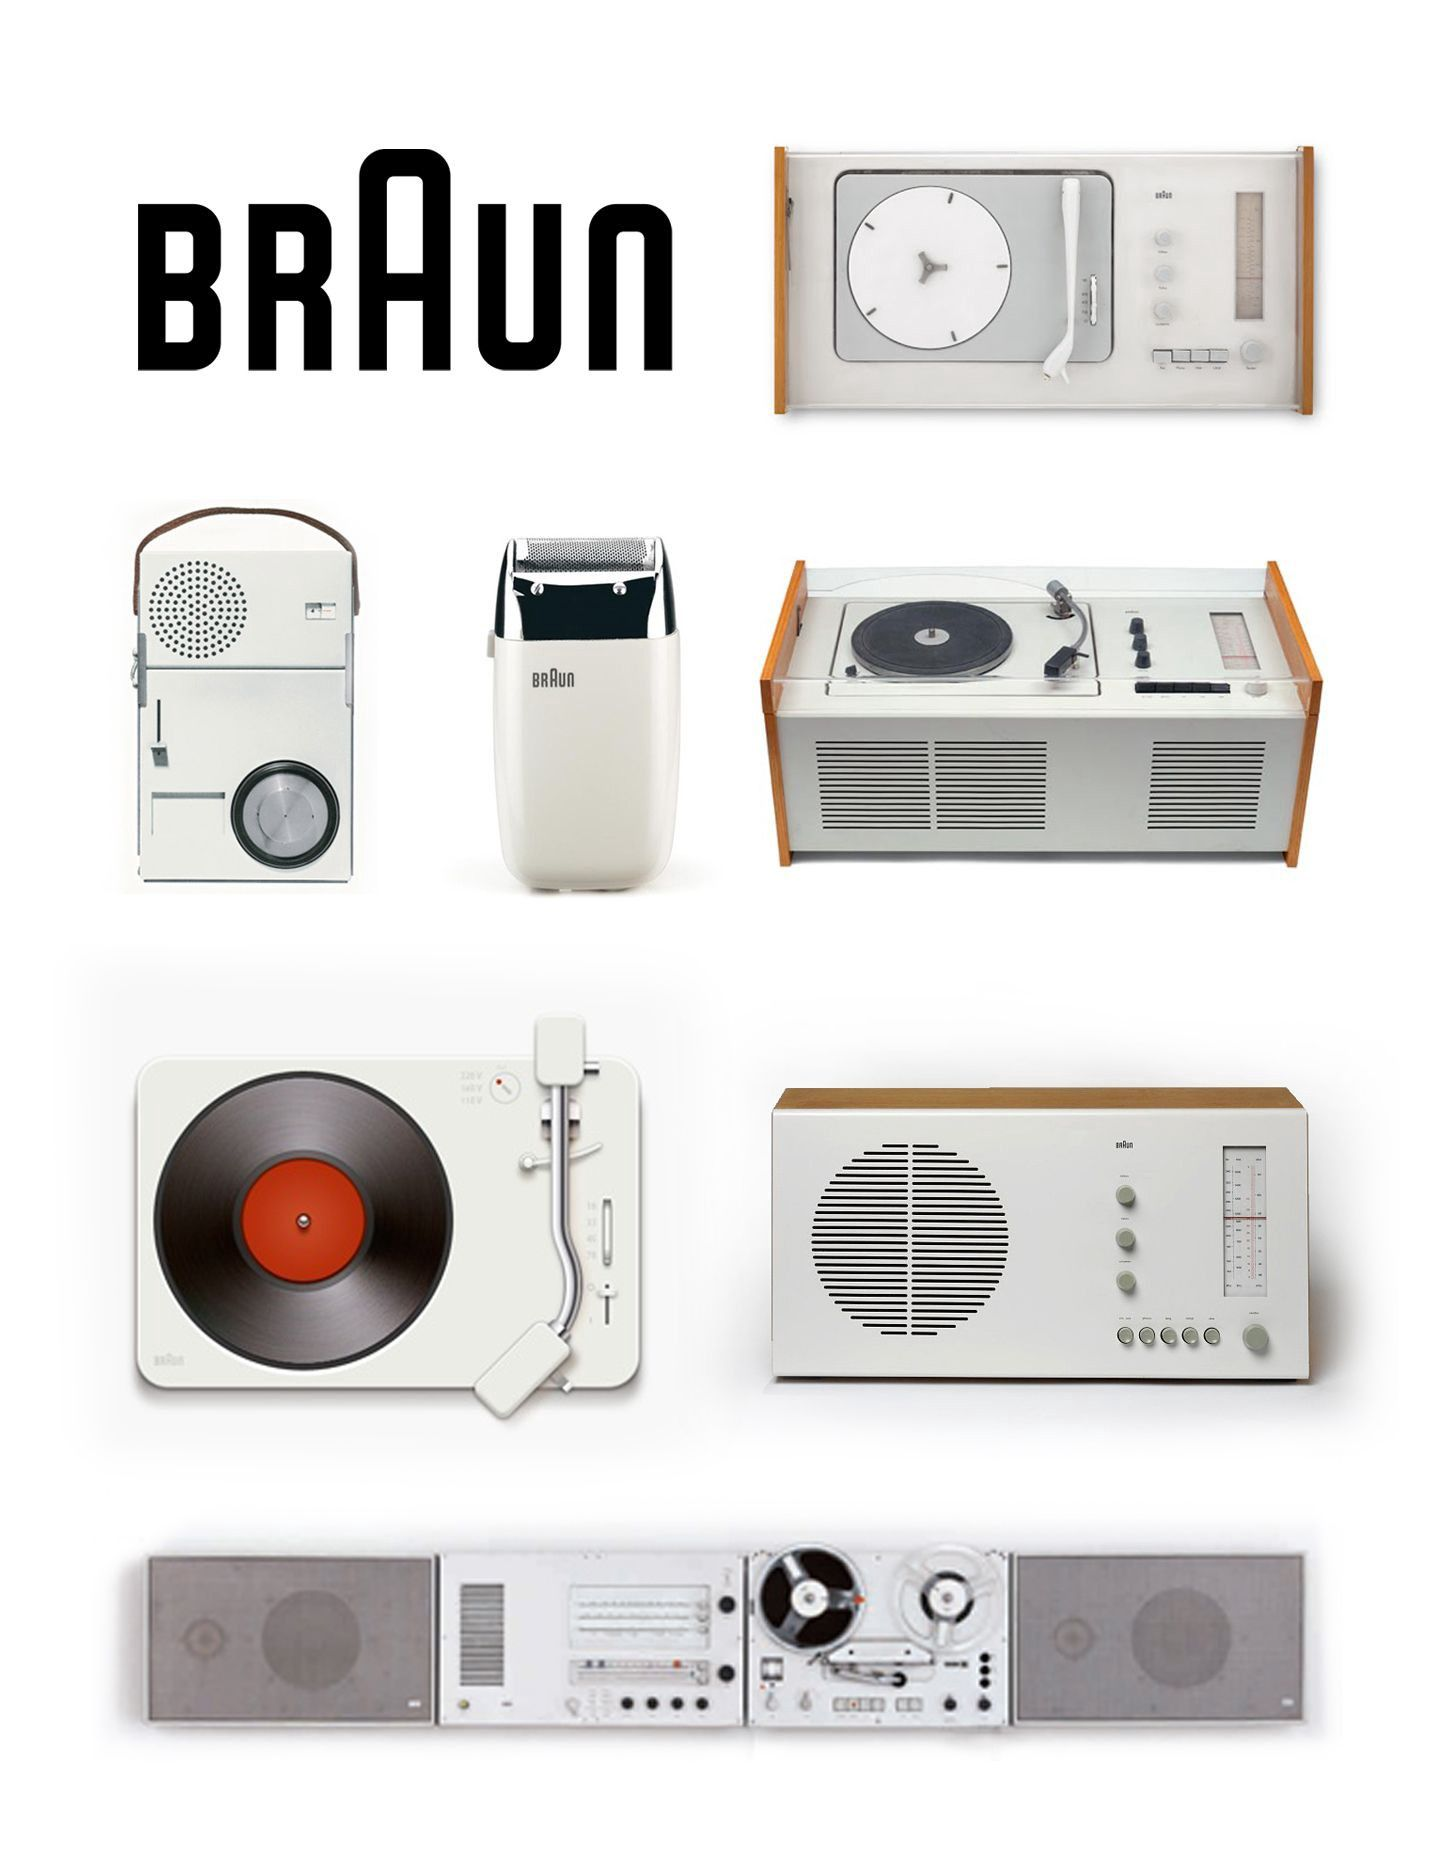 11 Life Lessons From Influential Product Designer Dieter Rams Braun Design Dieter Rams Design Dieter Rams